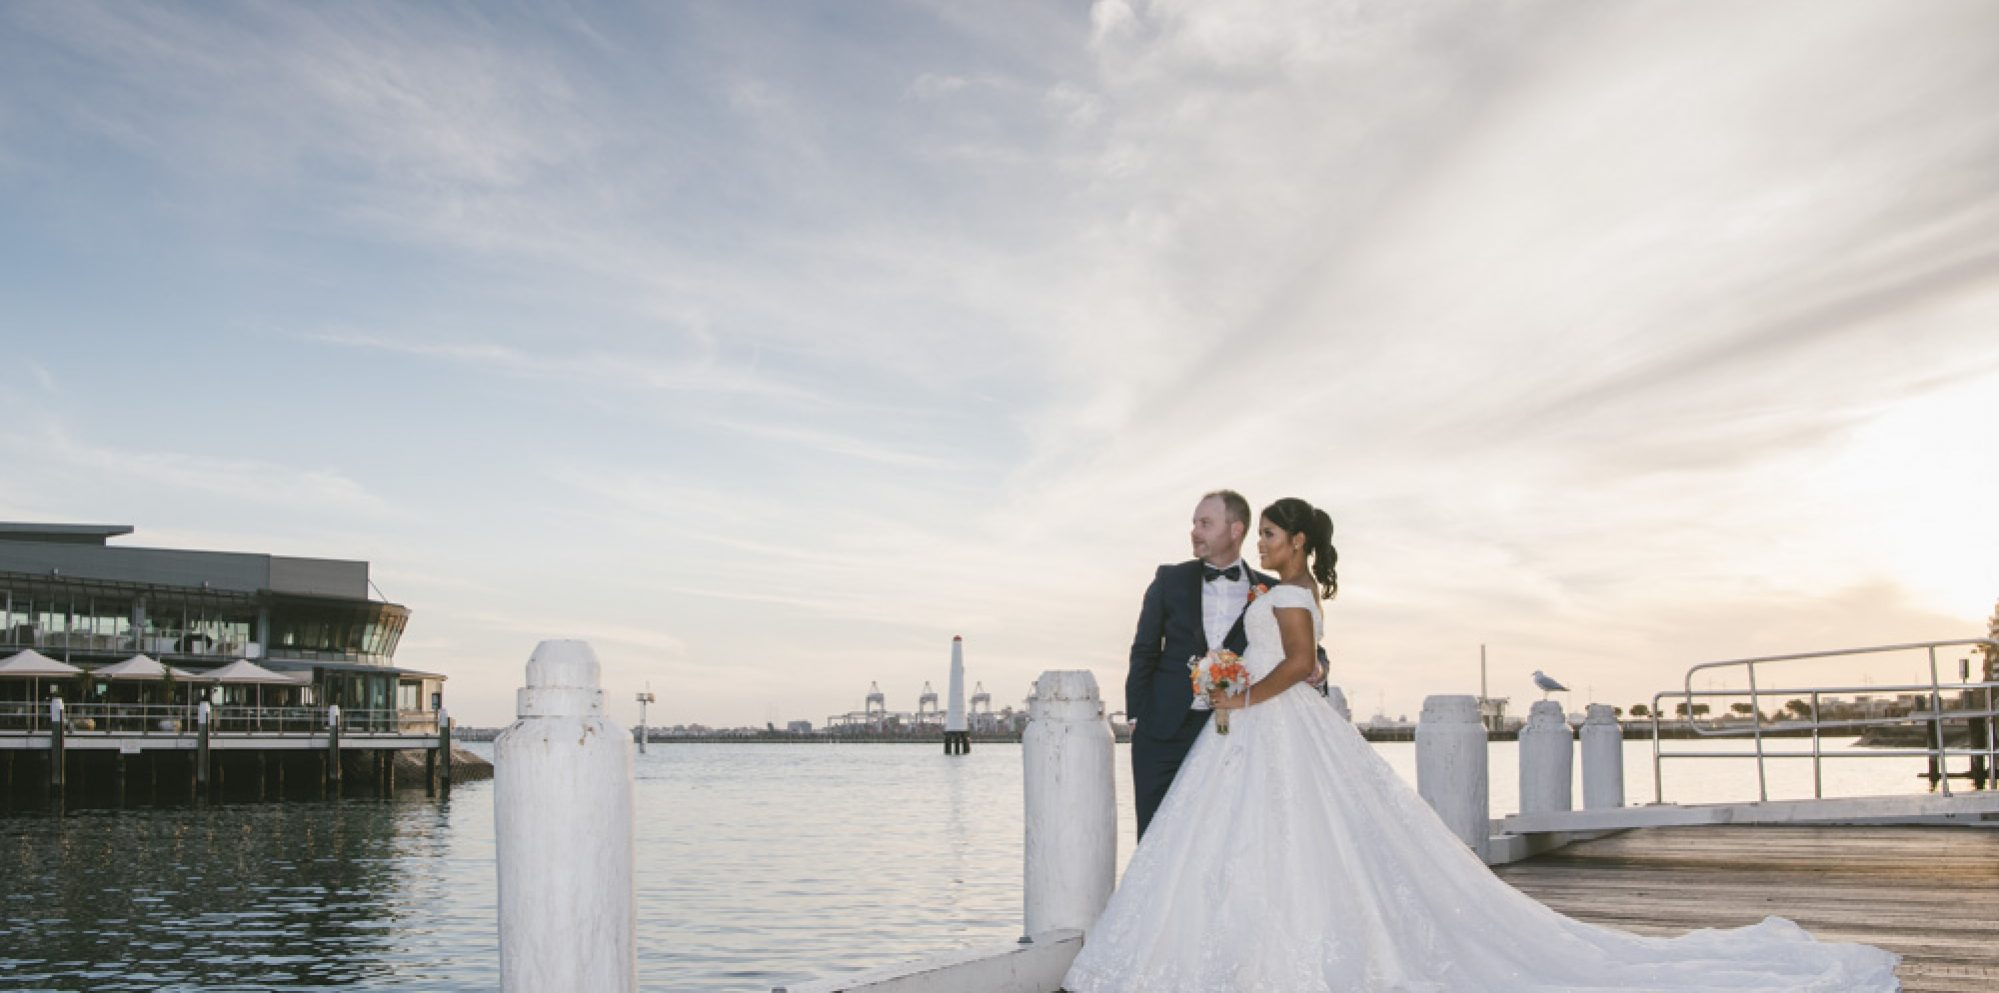 Patrick & maia | mr hobson, port melbourne